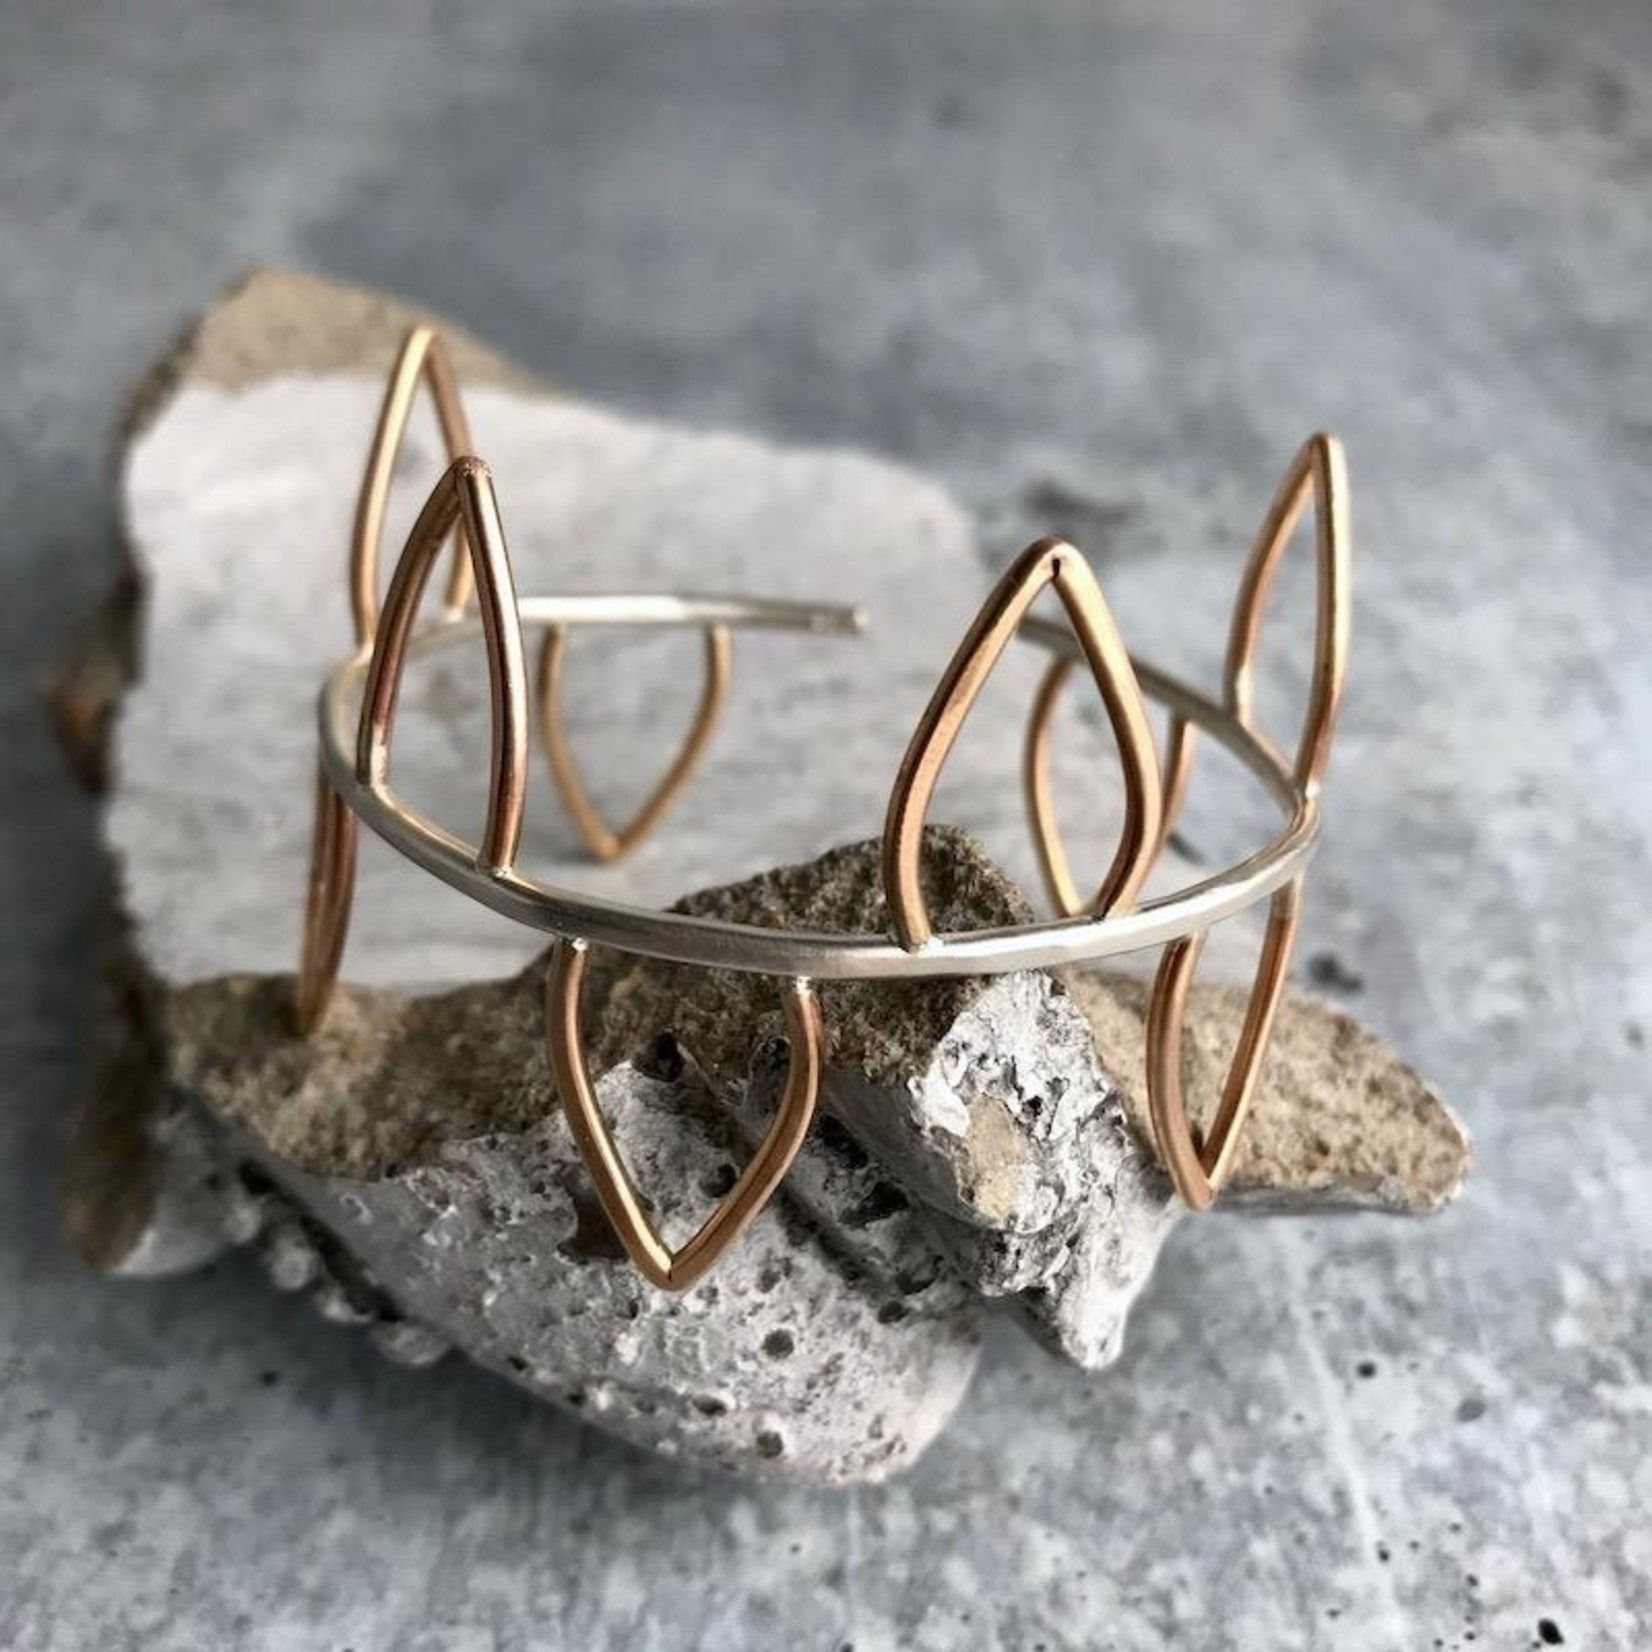 Handmade 14kt Goldfill Leaves and Sterling Silver Cuff